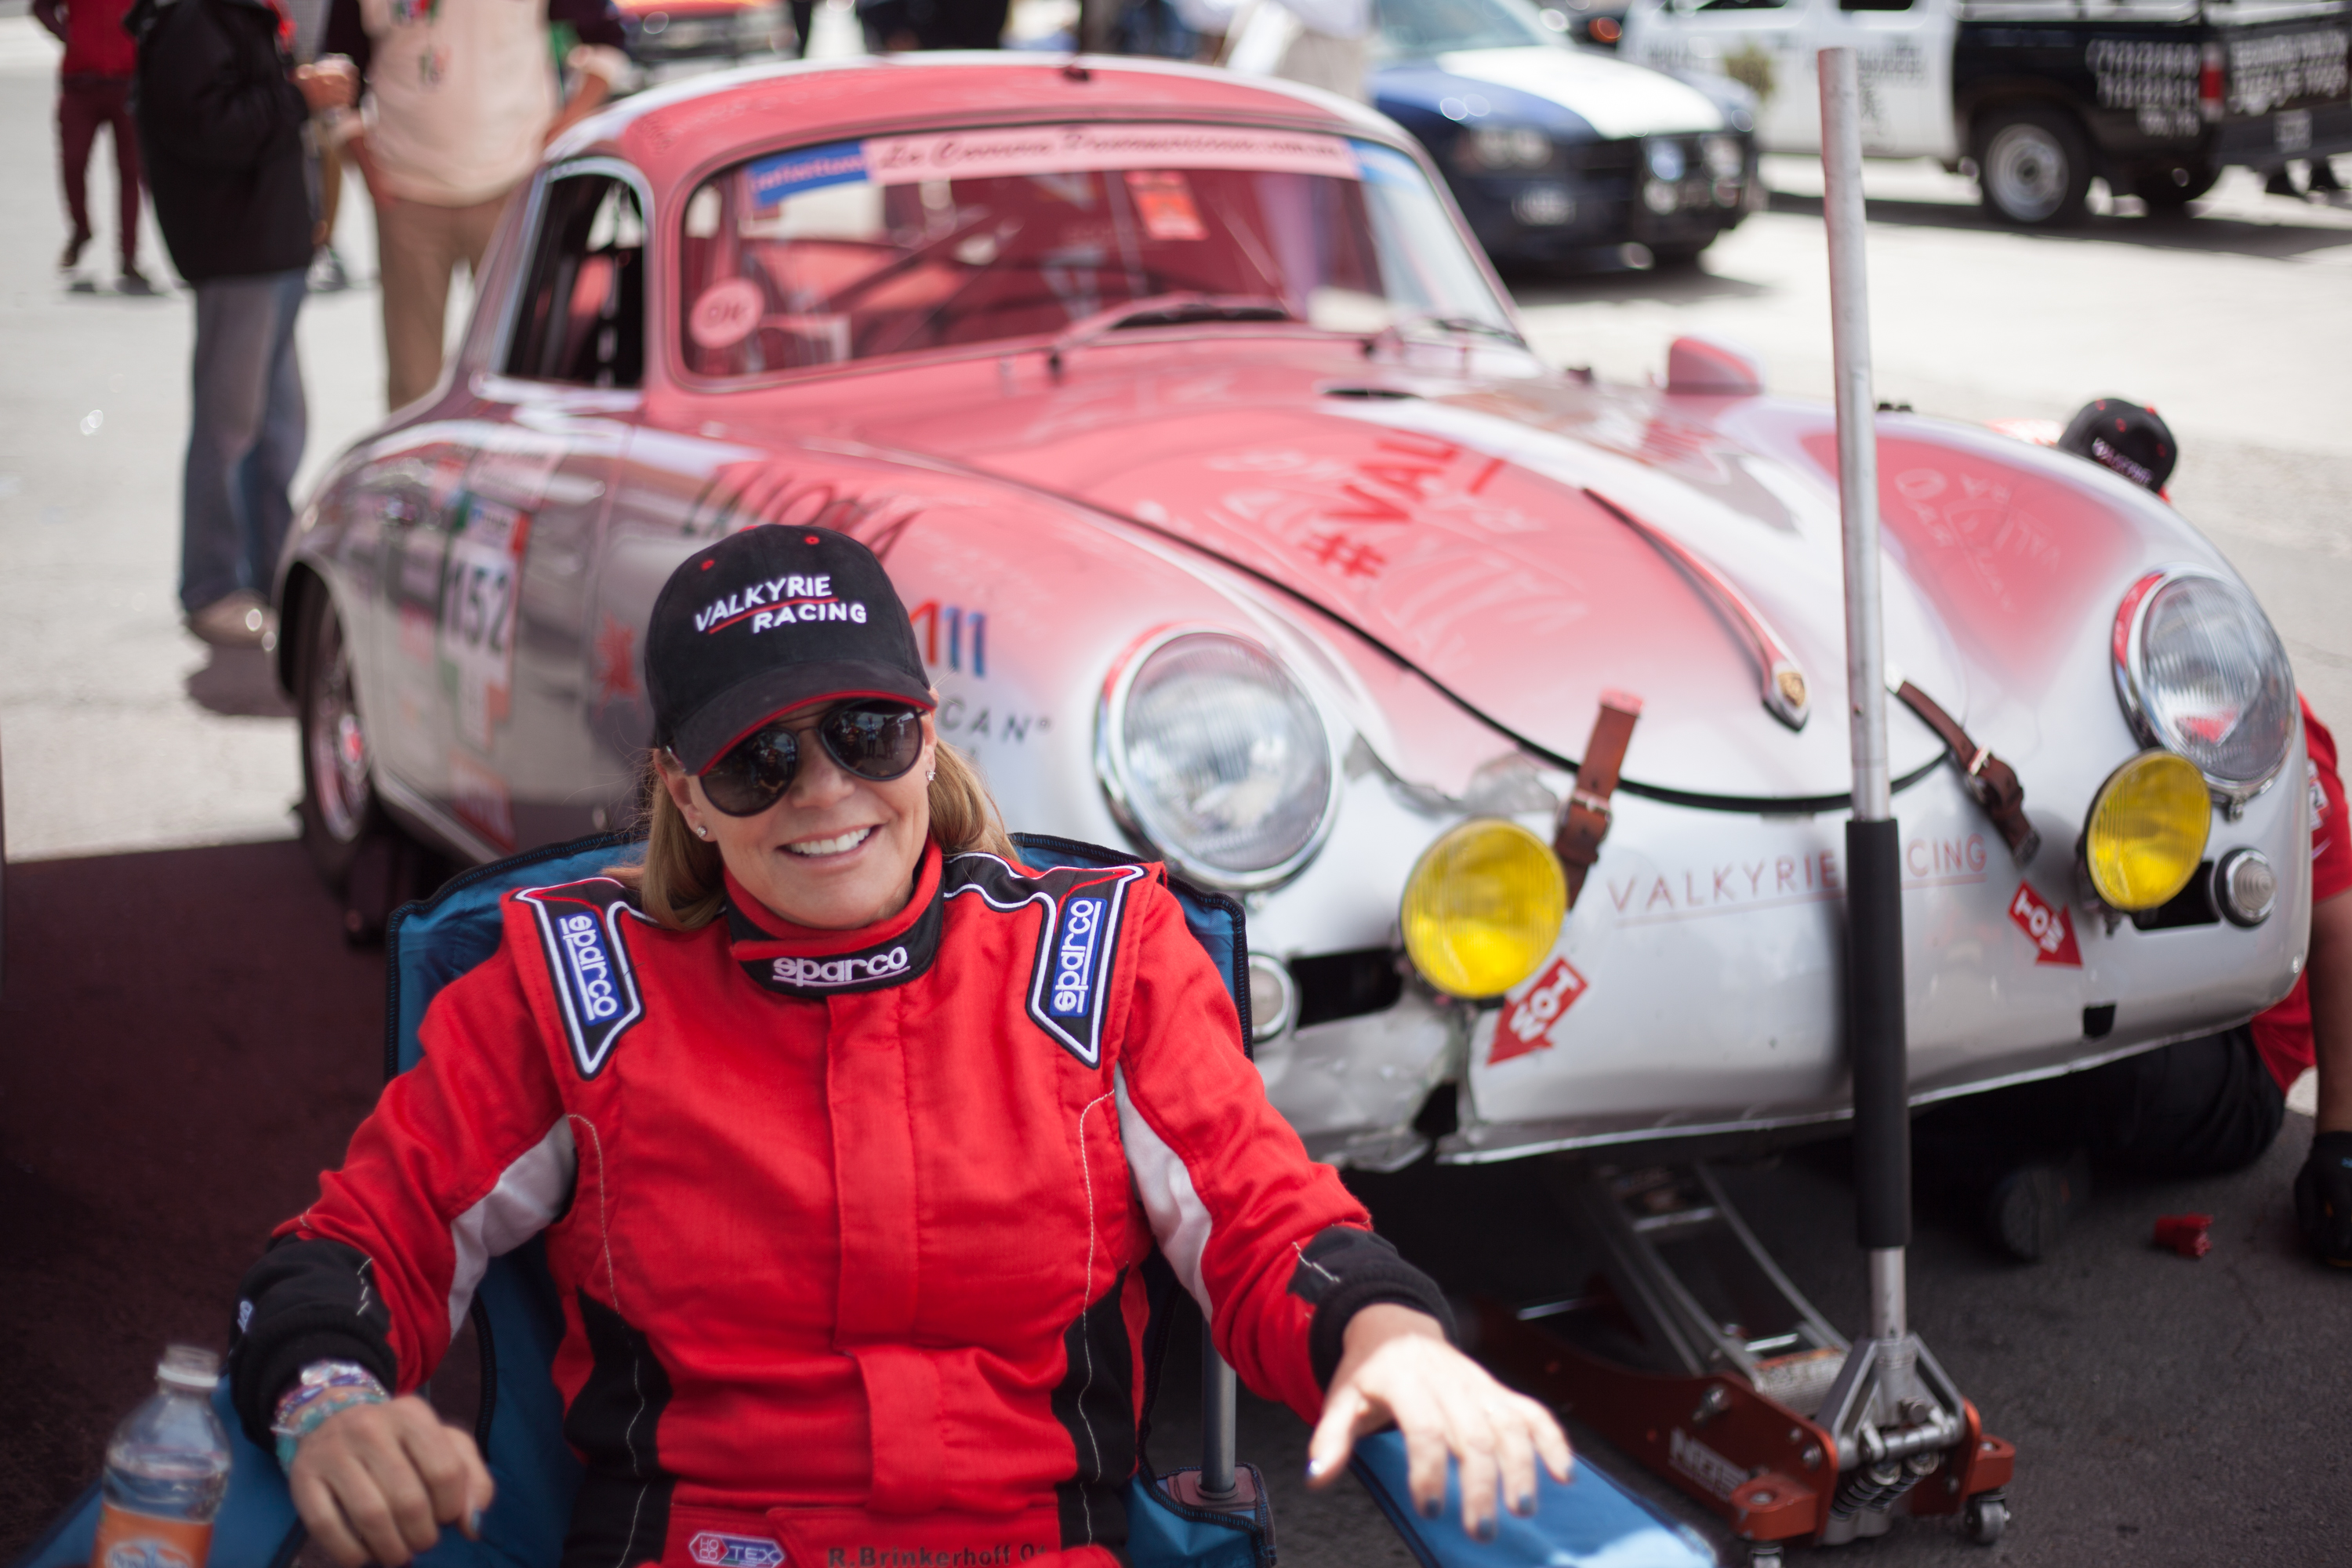 Brinkerhoff waits while her damaged Porsche is prepped for next race stage in the La Carrera Panamericana 2015.